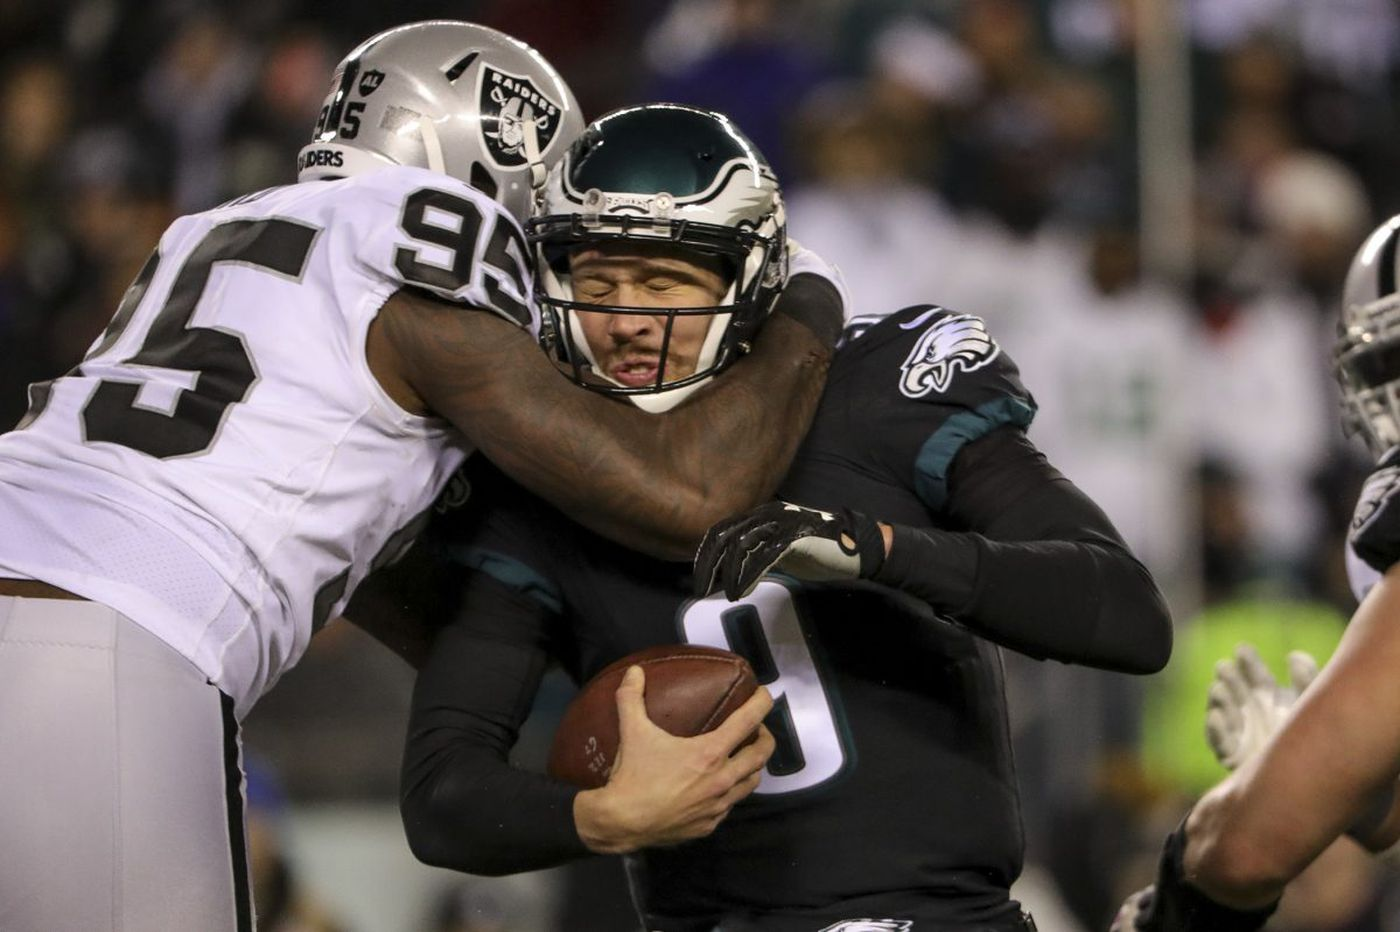 Concern about Nick Foles' readiness for the playoffs could mean Eagles QB plays against Dallas